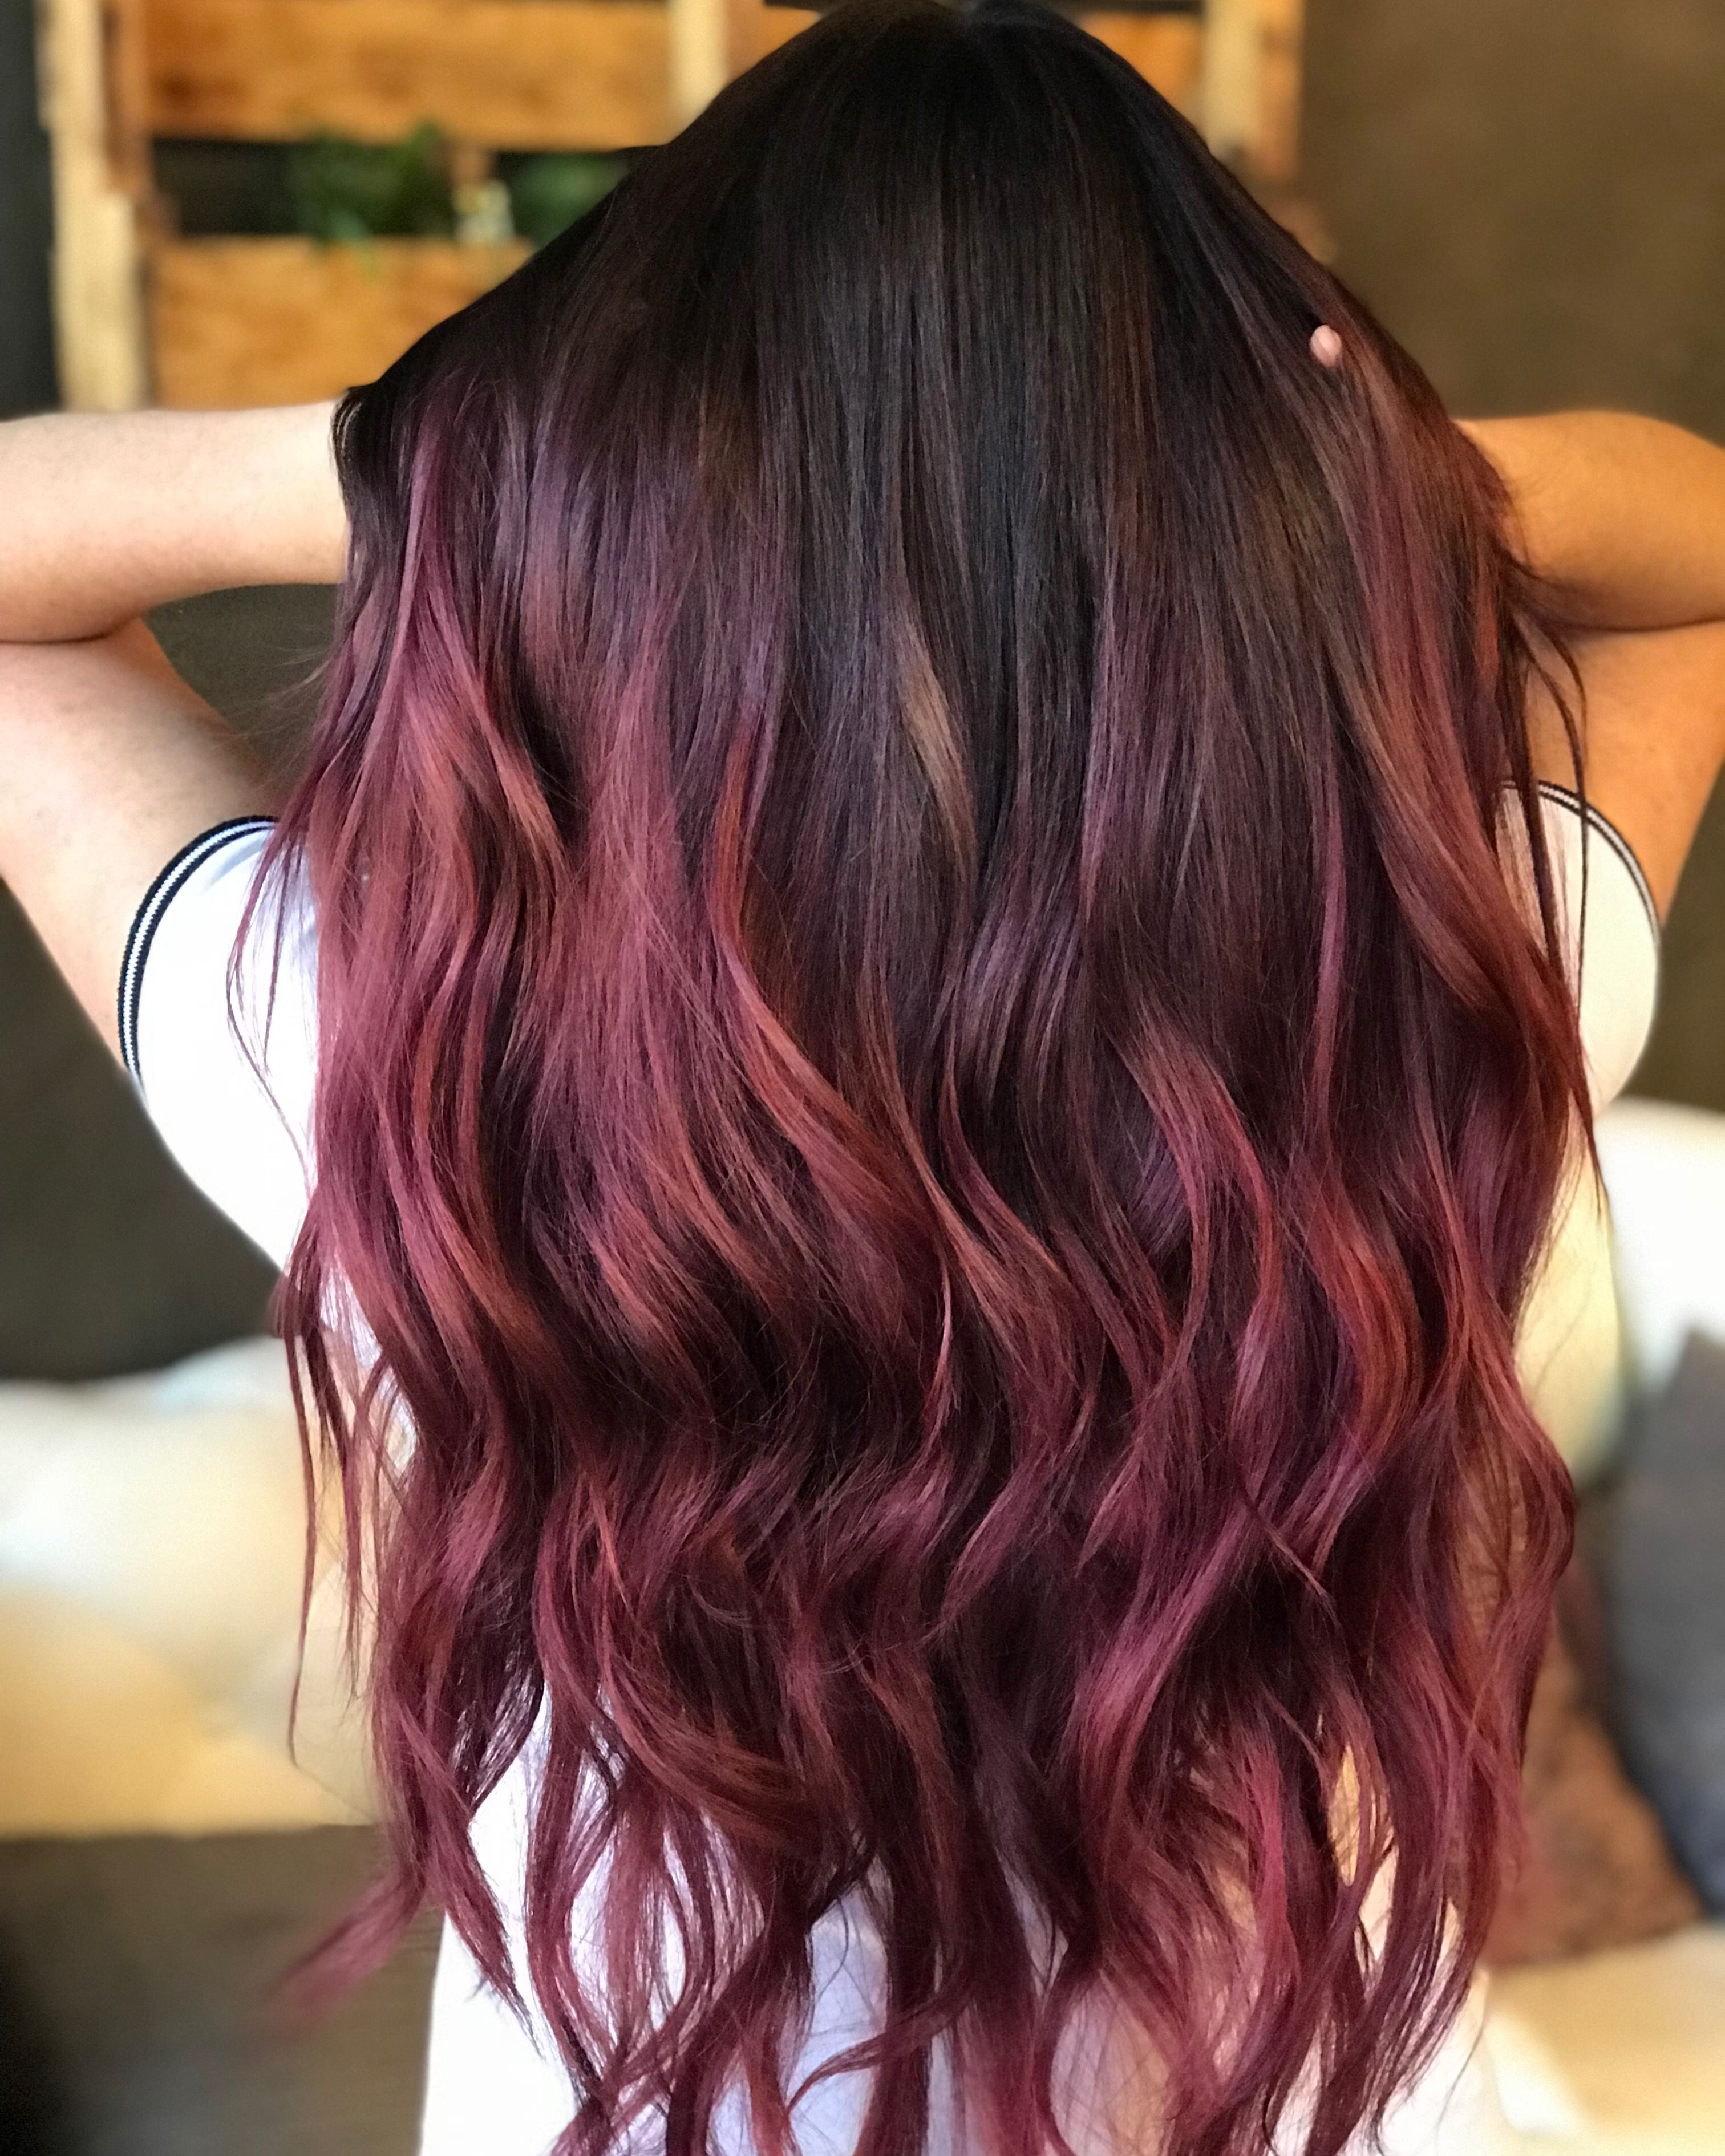 Red Balayage Color Melt Hair With Dark Brown Roots Color Melting Hair Brown Ombre Hair Roots Hair